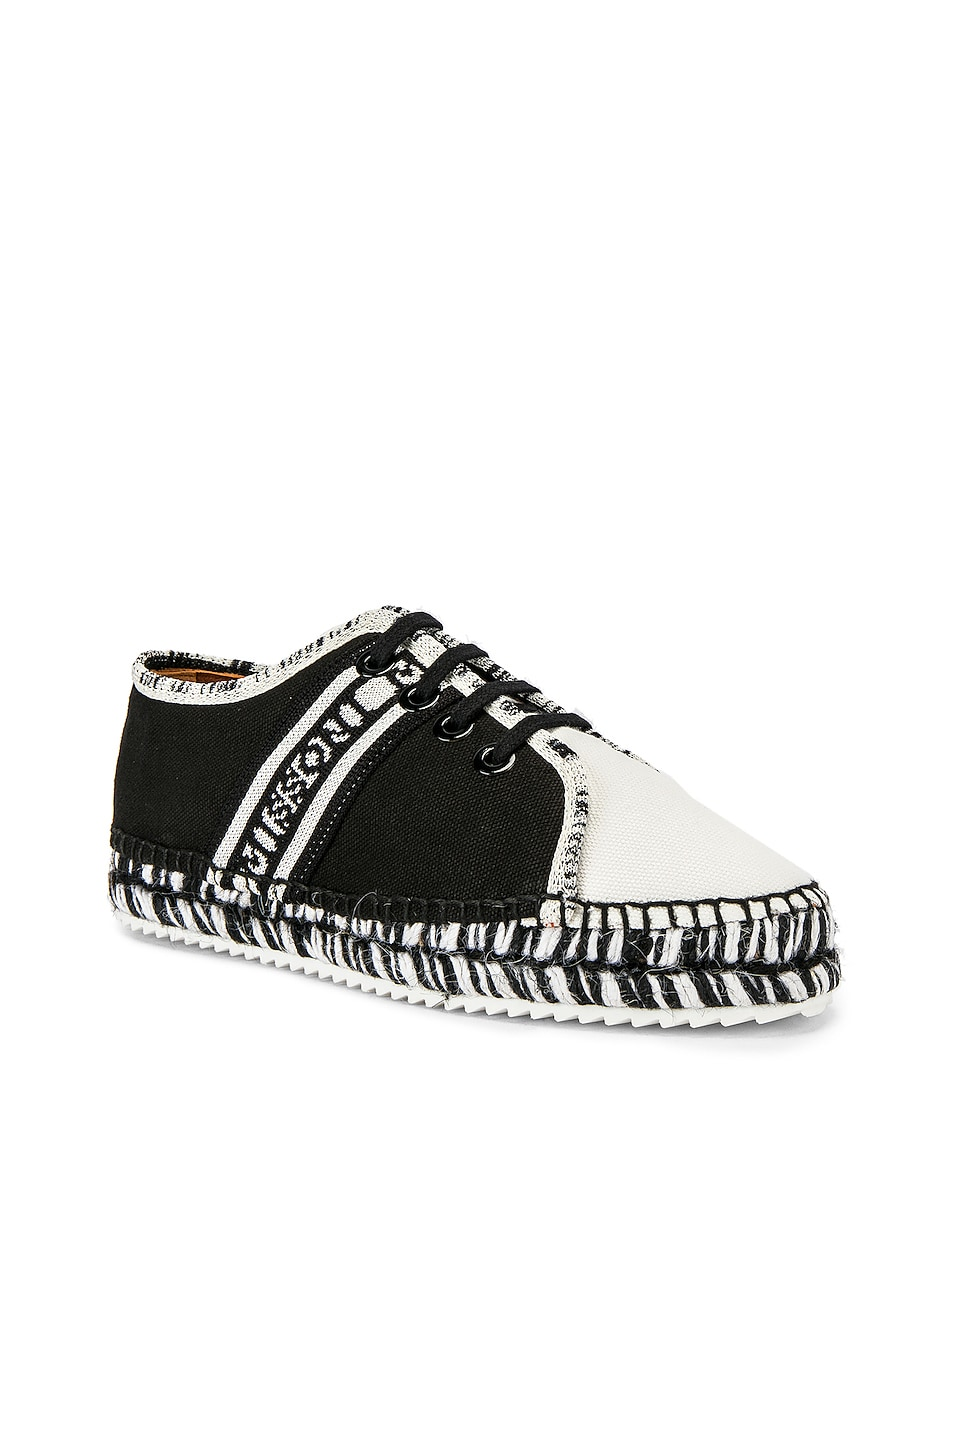 Image 2 of Castaner x MISSONI Kerri Sneaker in Black & White